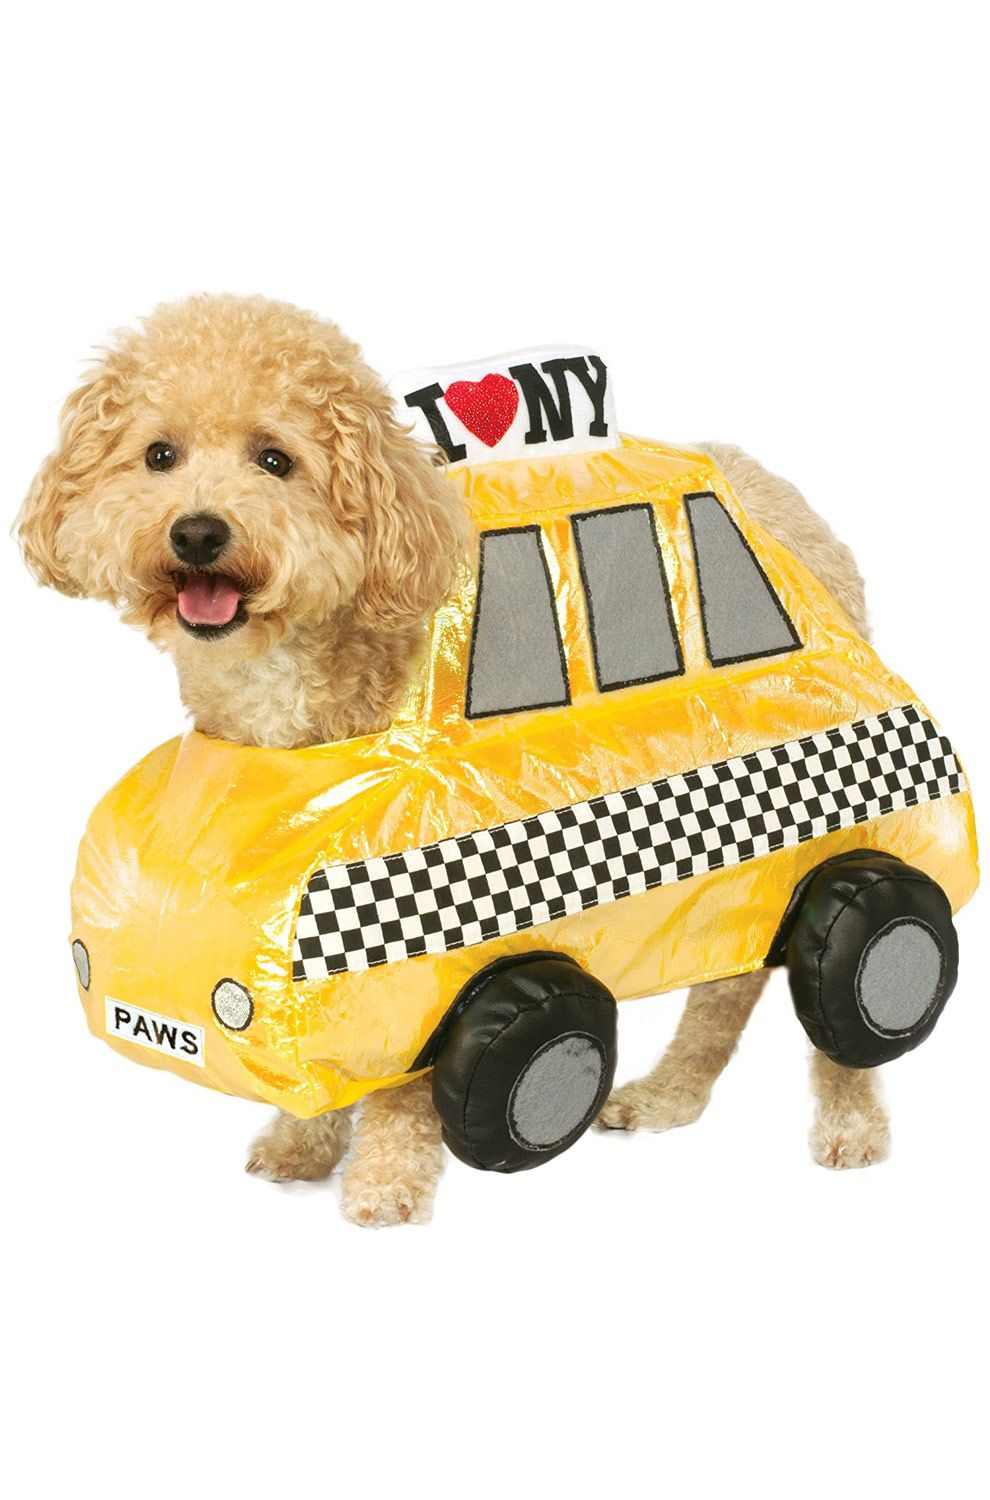 Nyc Taxi Cab Pet Costume Pet Costumes Dog Halloween Costumes